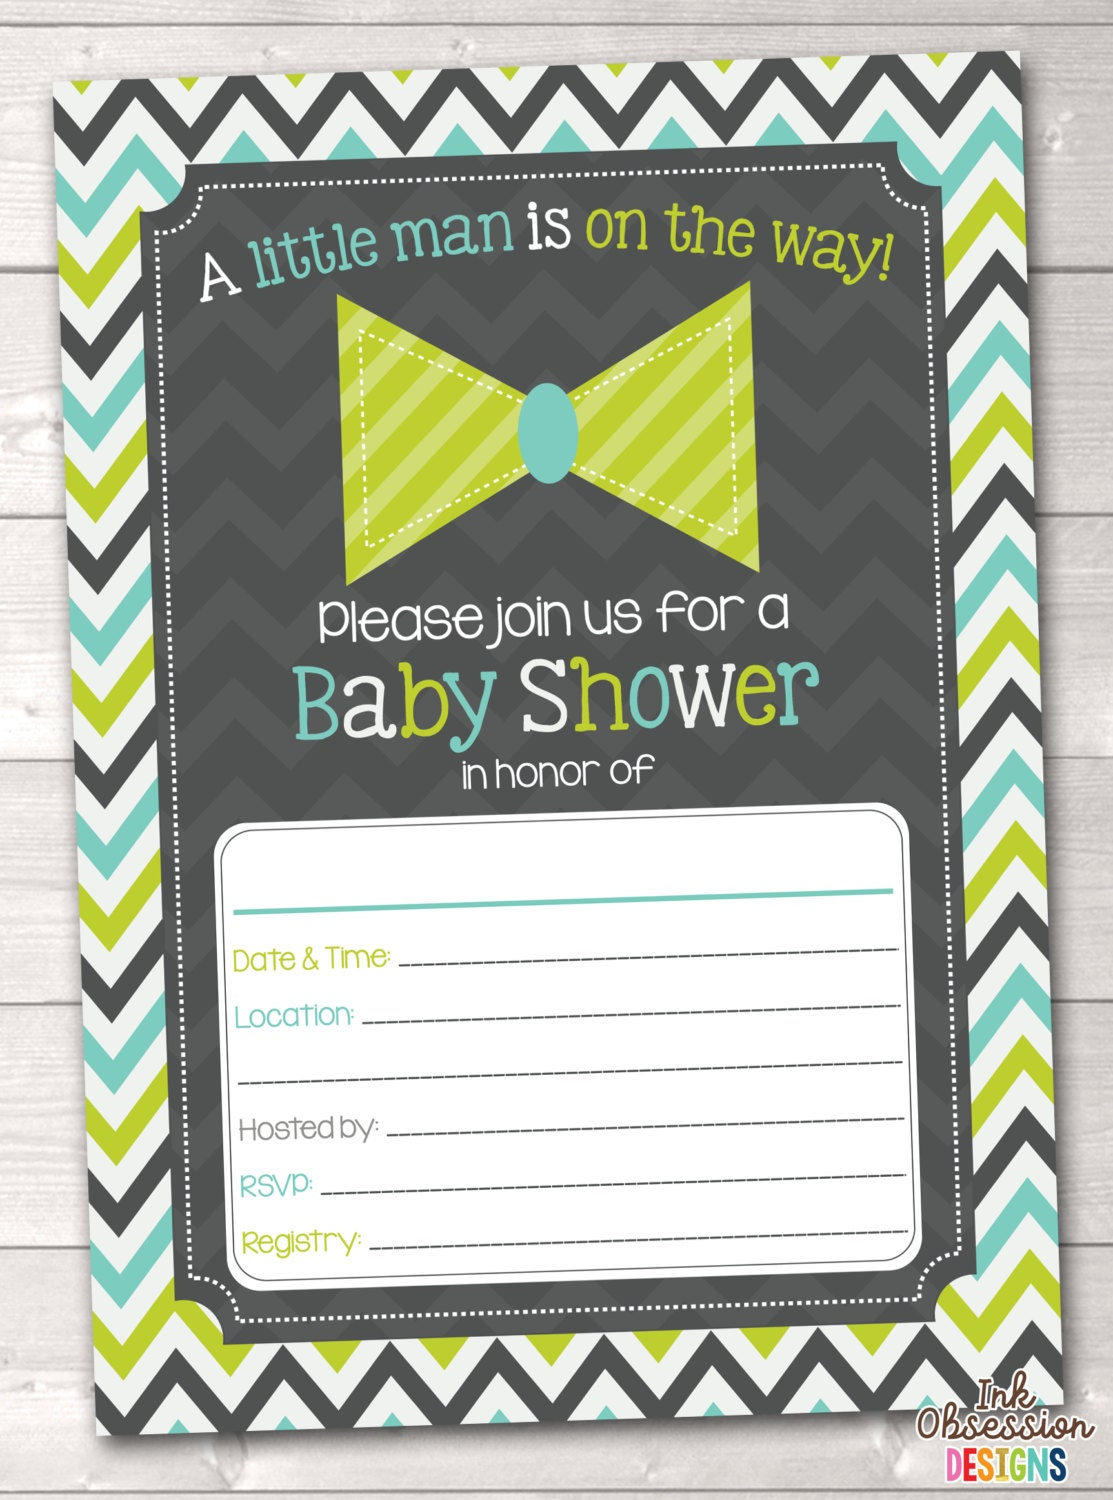 fill in little man baby shower invitations by inkobsessiondesigns